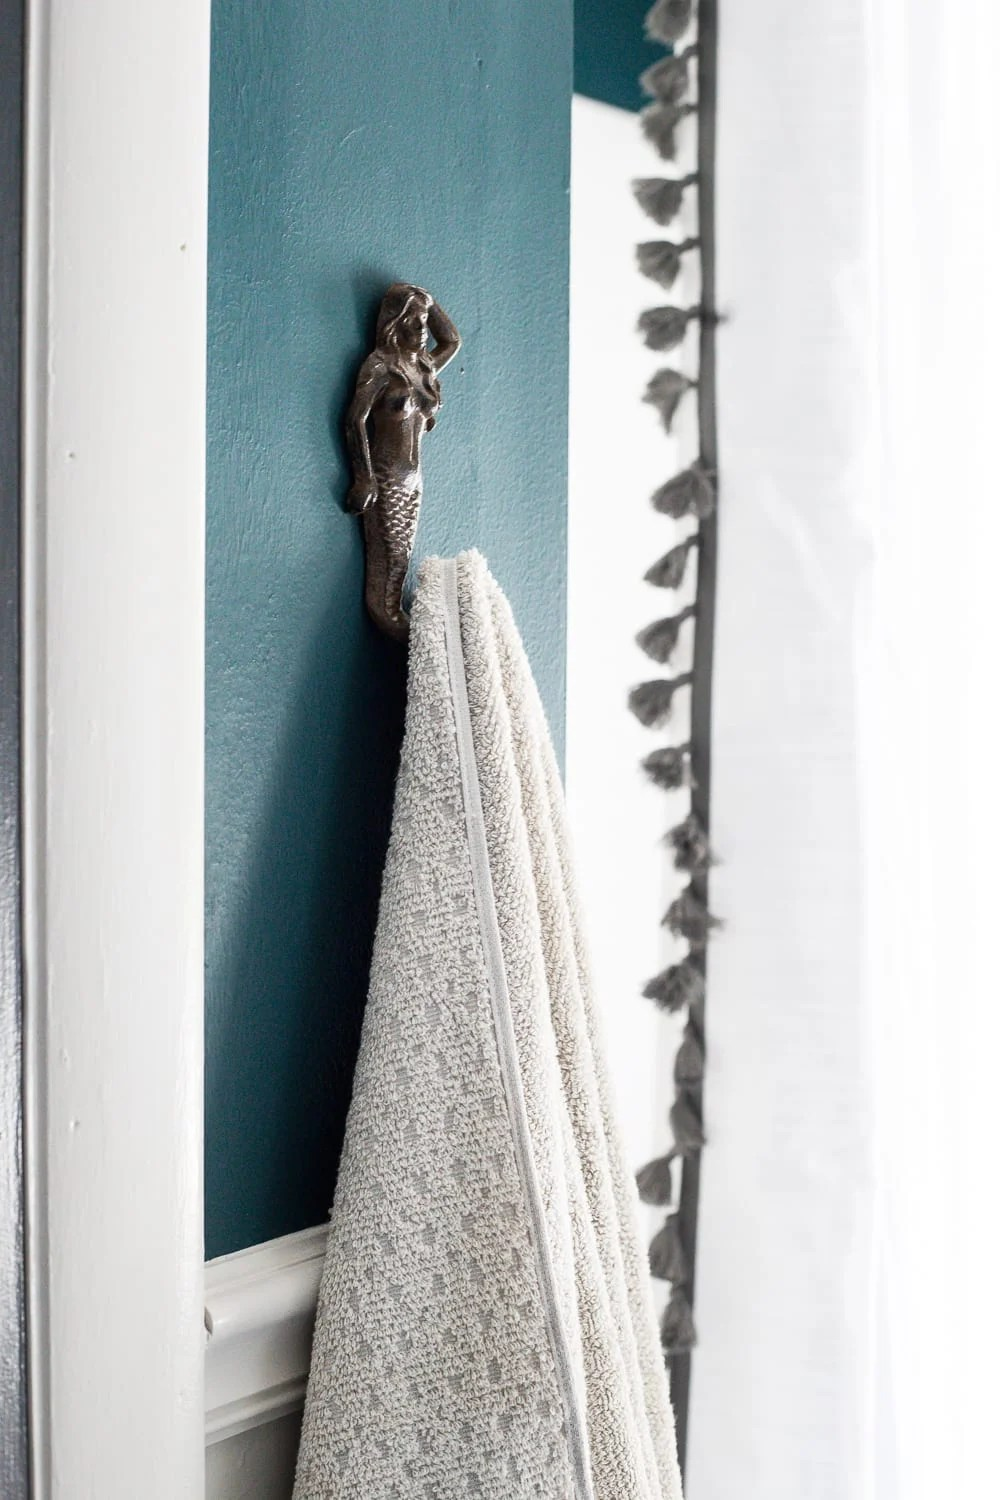 kid-friendly home - hooks for hanging up towels easily in the bathroom